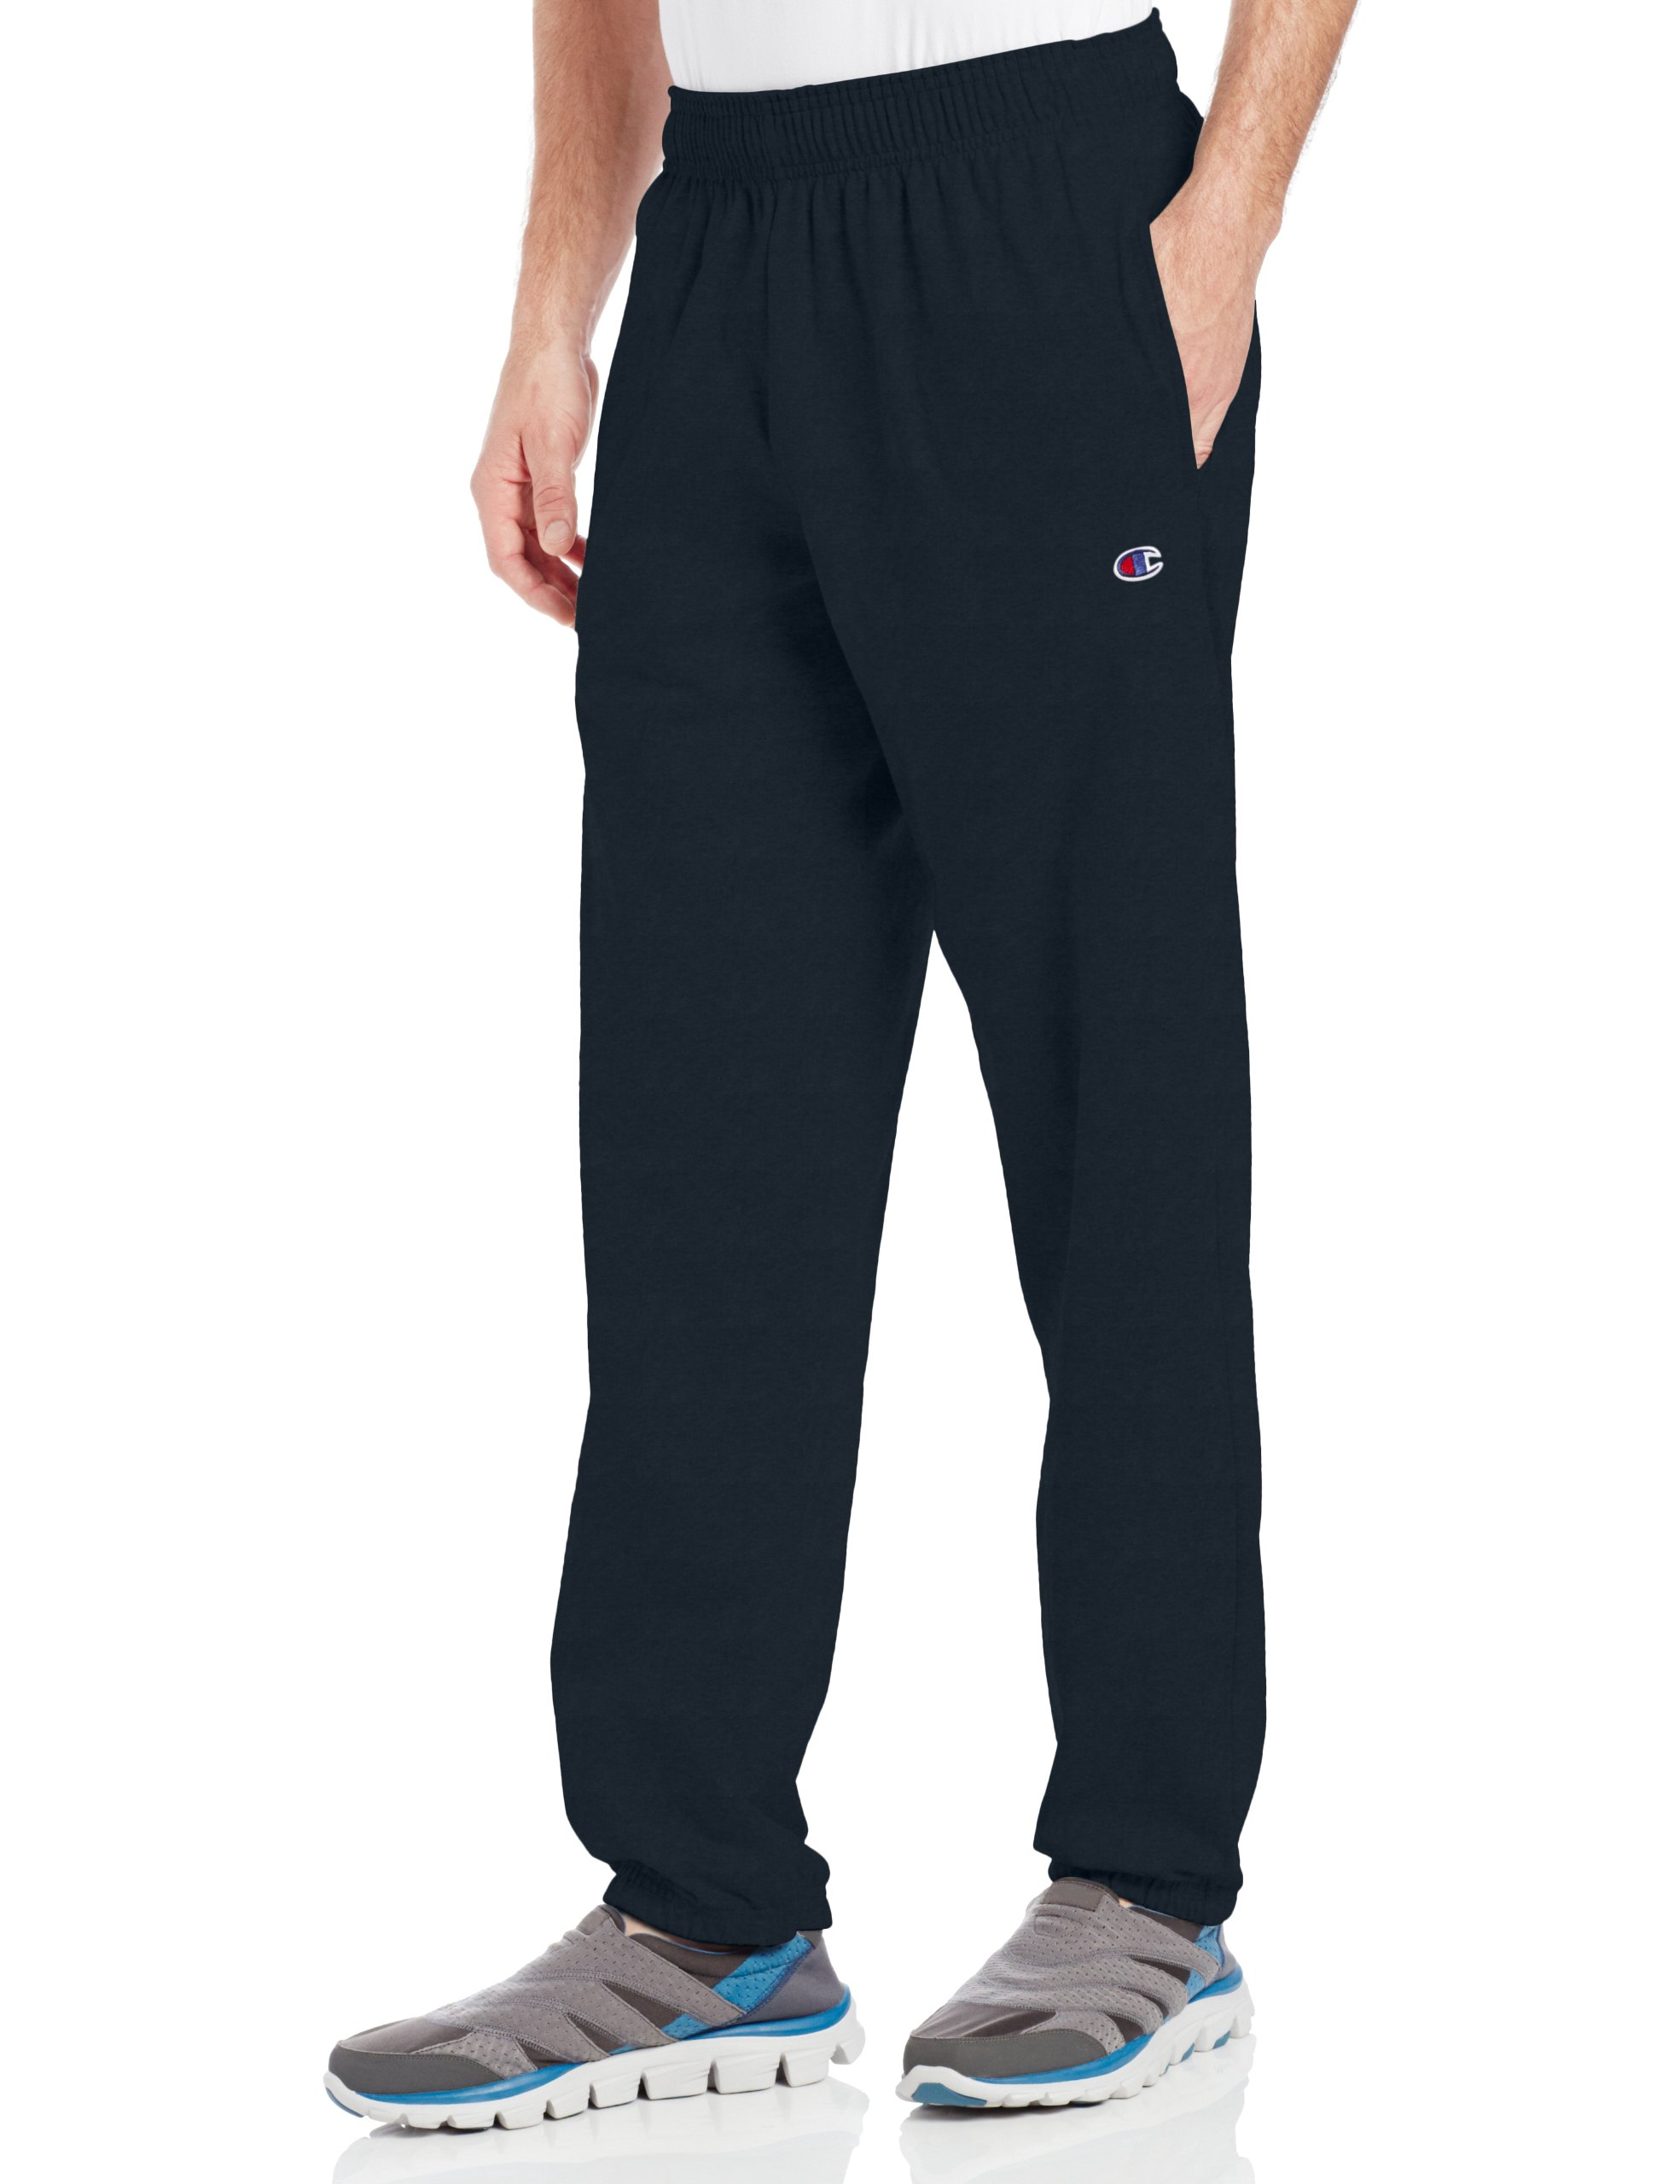 Champion Men's Closed Bottom Light Weight Jersey Sweatpant, Navy, 4XL by Champion